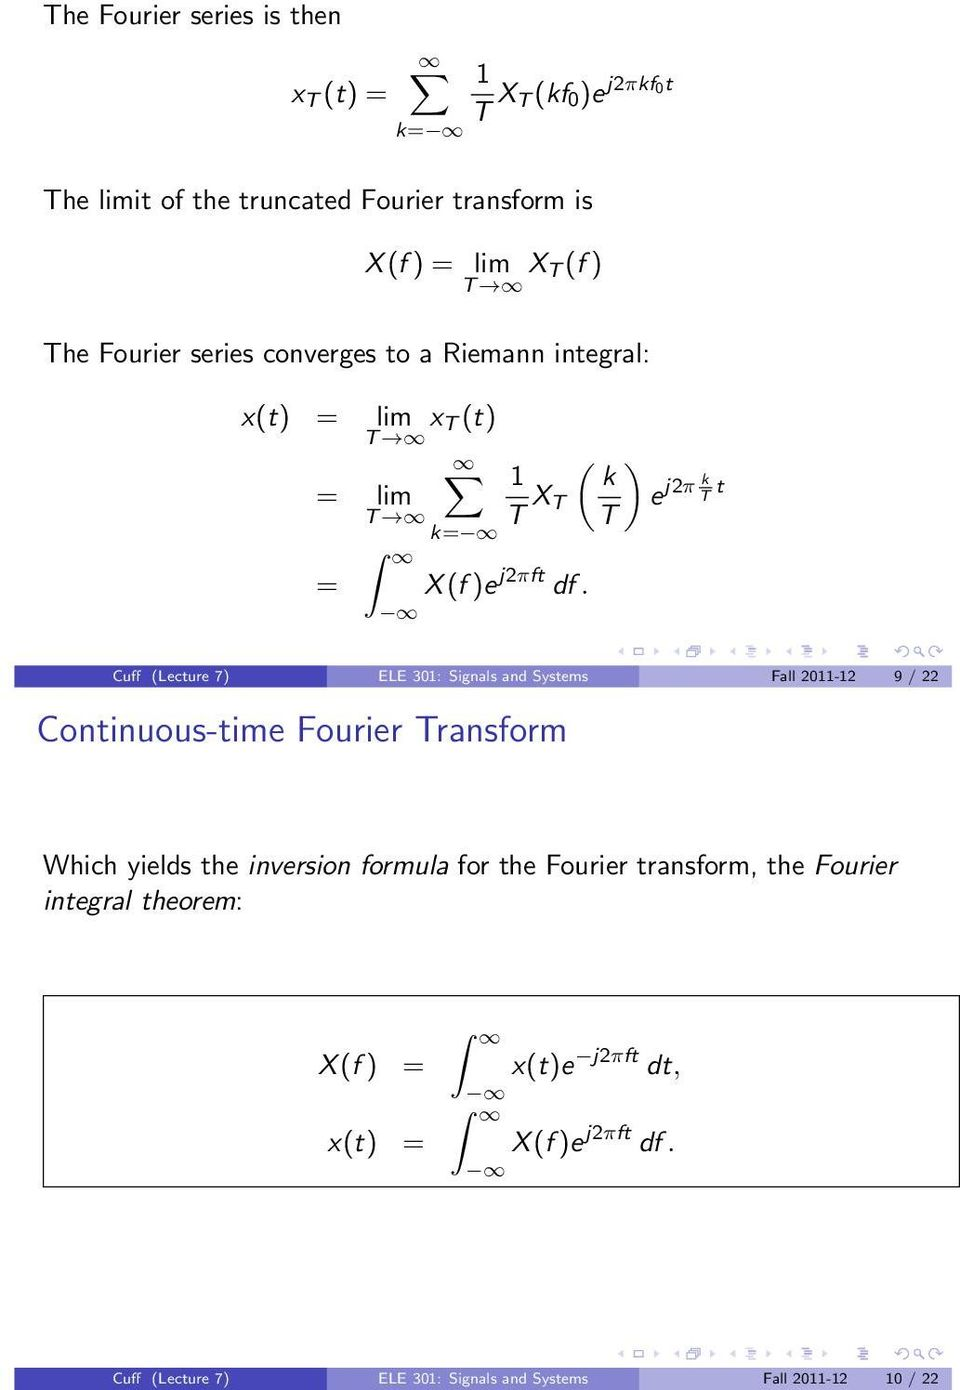 Cuff (Lecture 7) ELE 3: Signals and Systems Fall 2-2 9 / 22 Continuous-time Fourier Transform Which yields the inversion formula for the